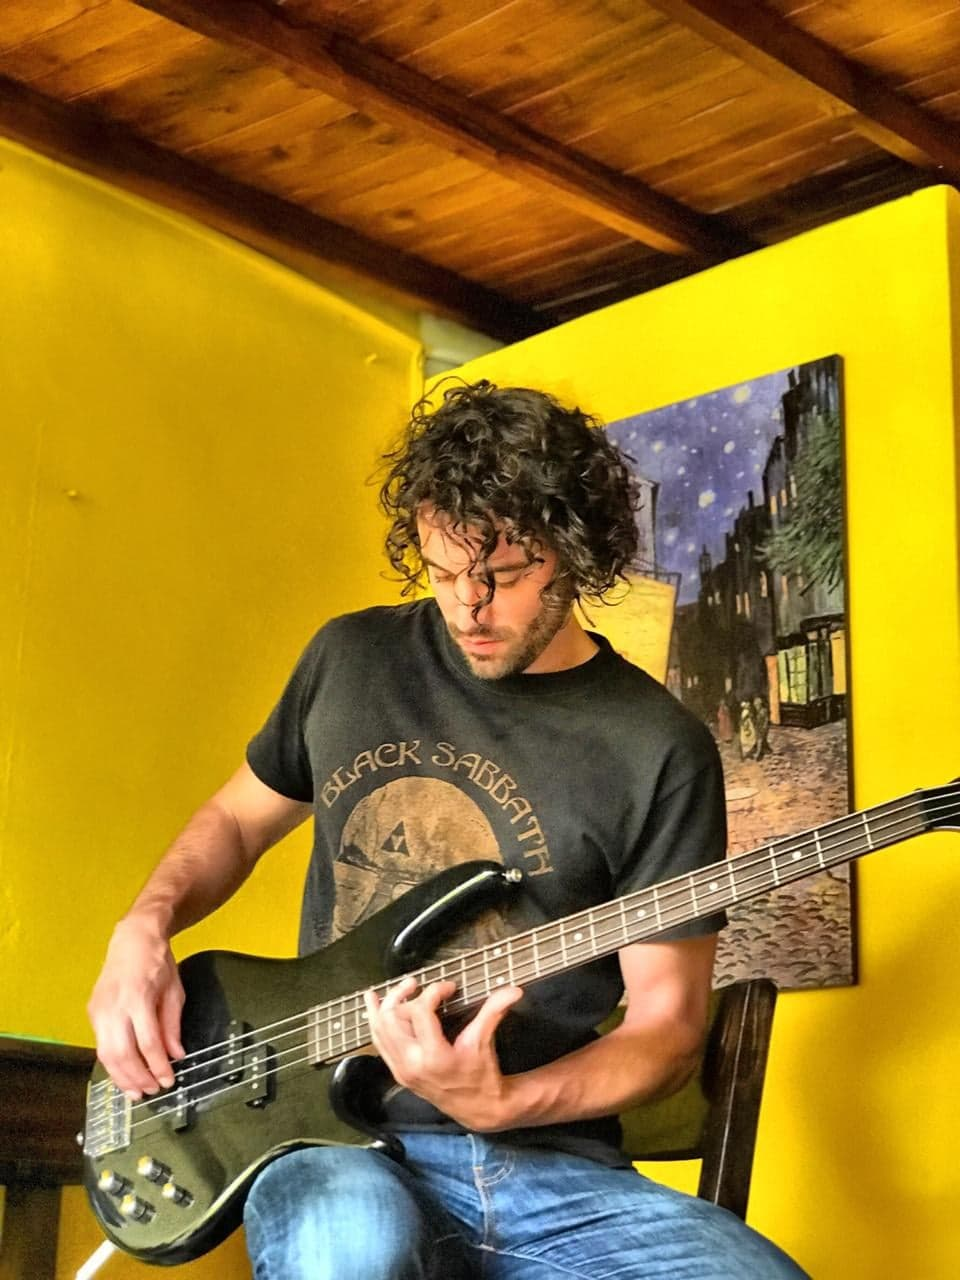 Francis Will plays bass at home in Newfoundland during lockdown, after returning from living in Montreal.